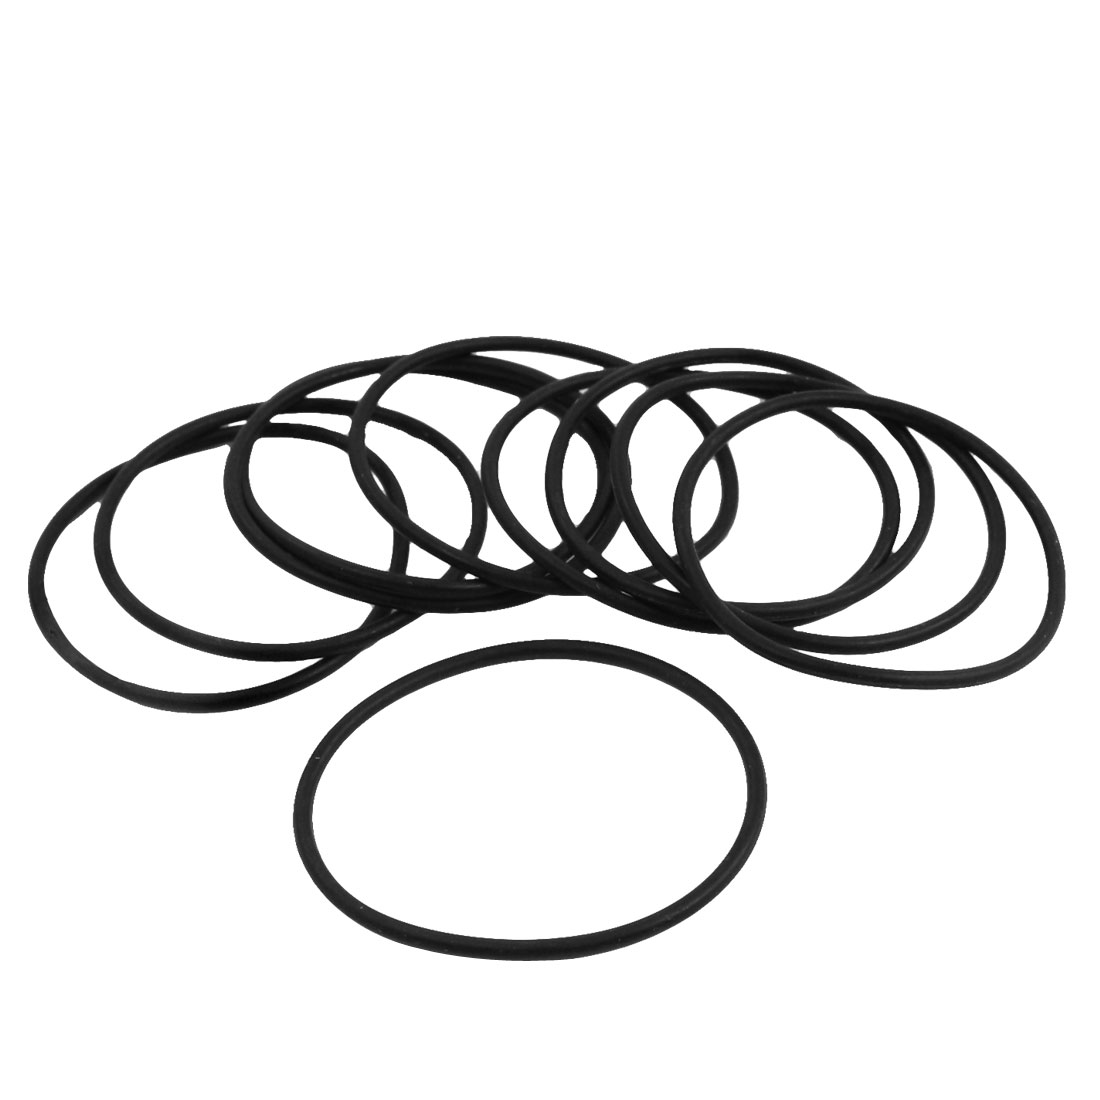 10Pcs 38.7mm Outside Dia 1.8mm Thick Rubber Oil Filter Seal Gasket Black